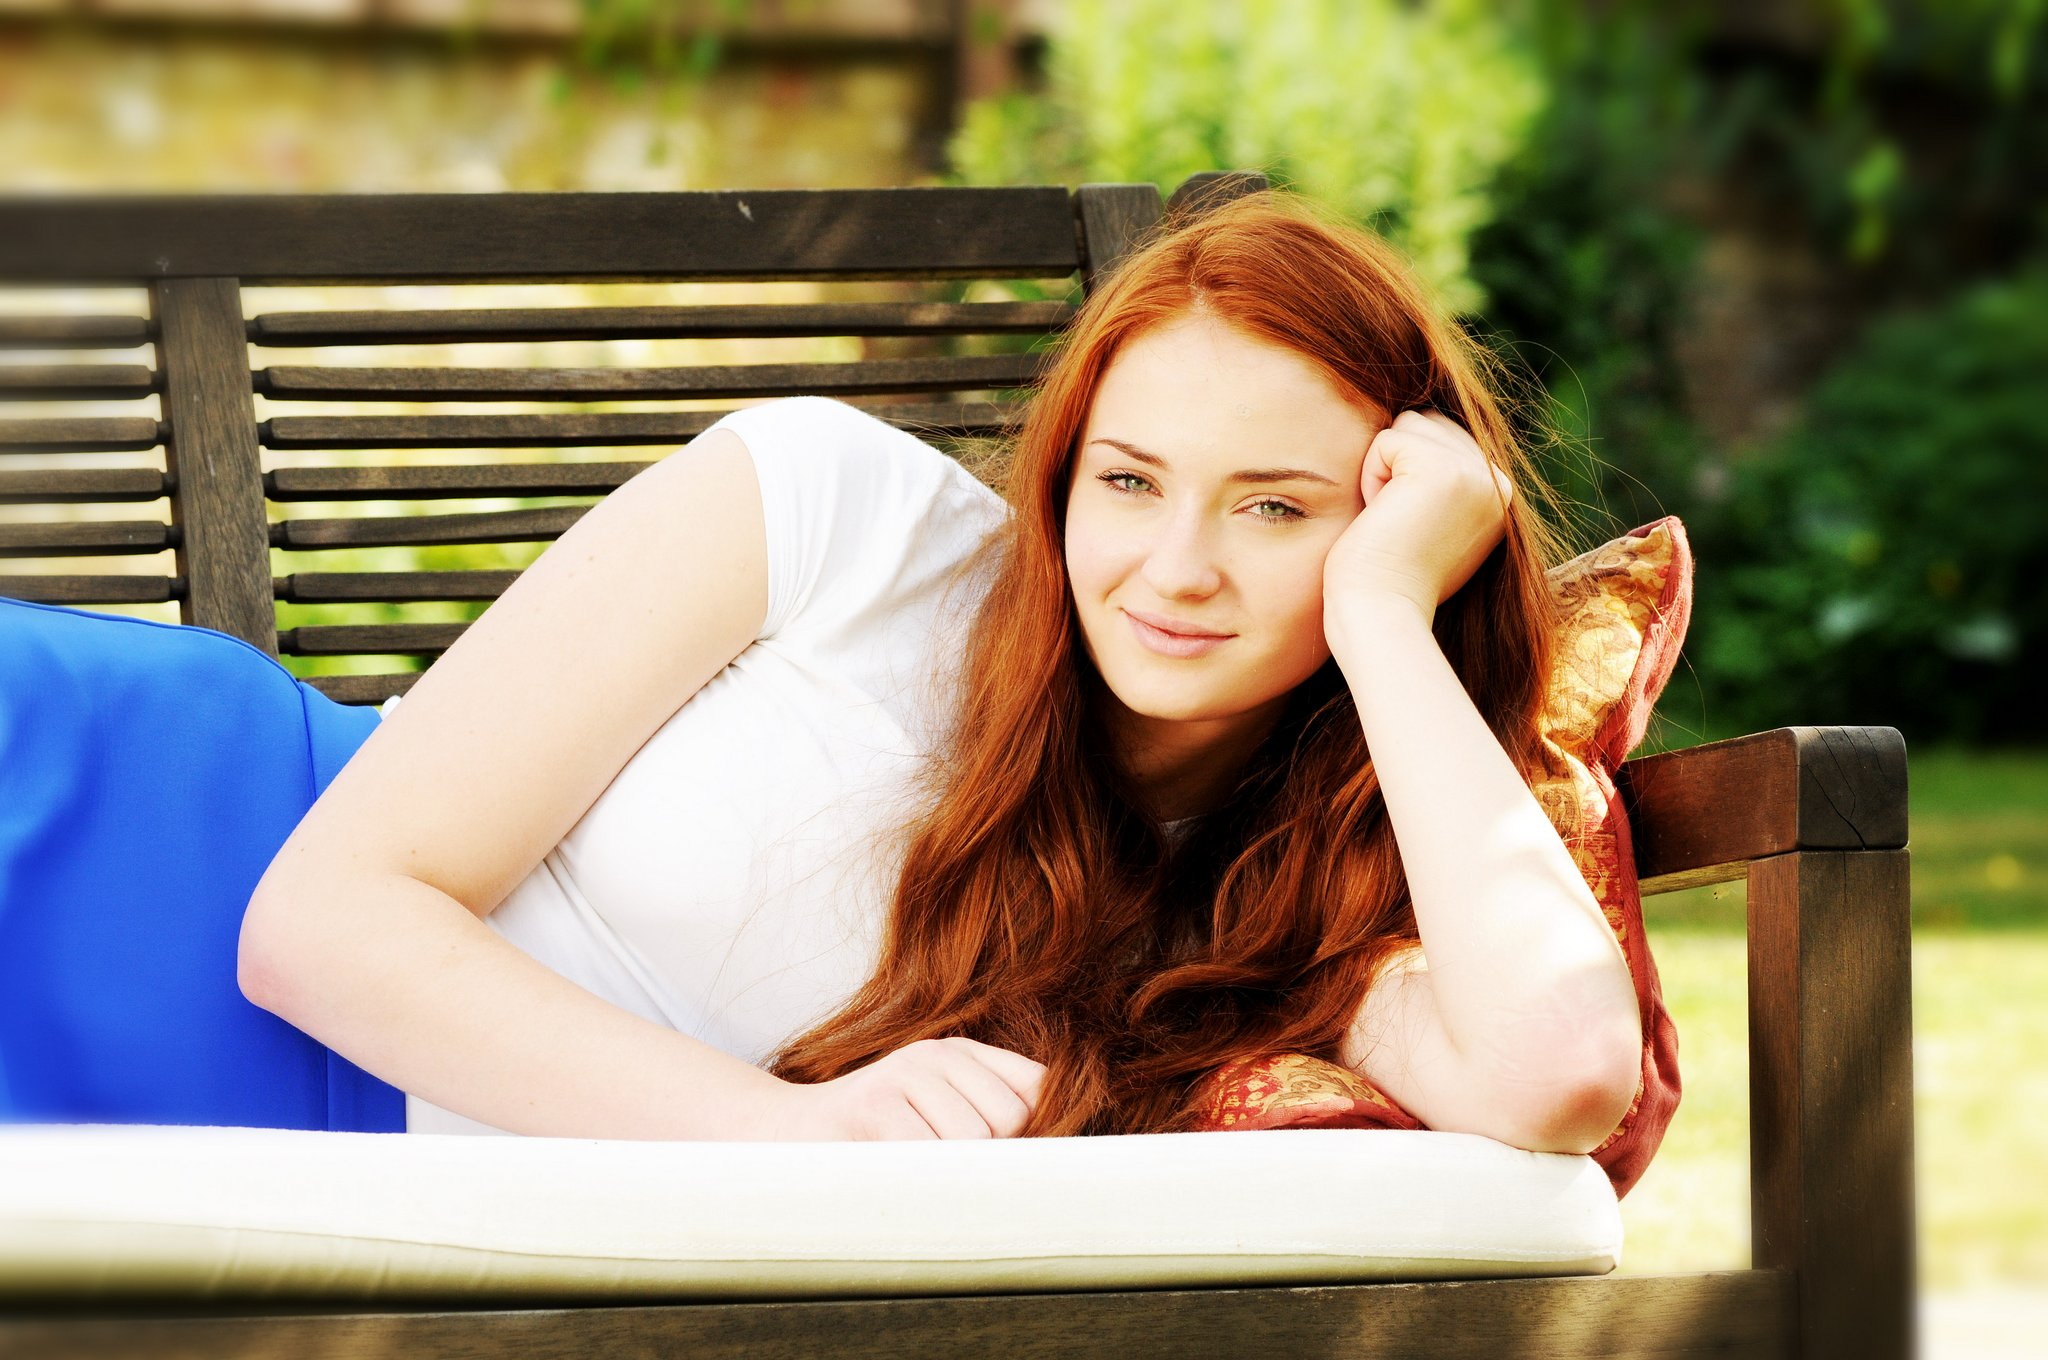 Sophie Turner (actress) Photo 320 Of 967 Pics, Wallpaper